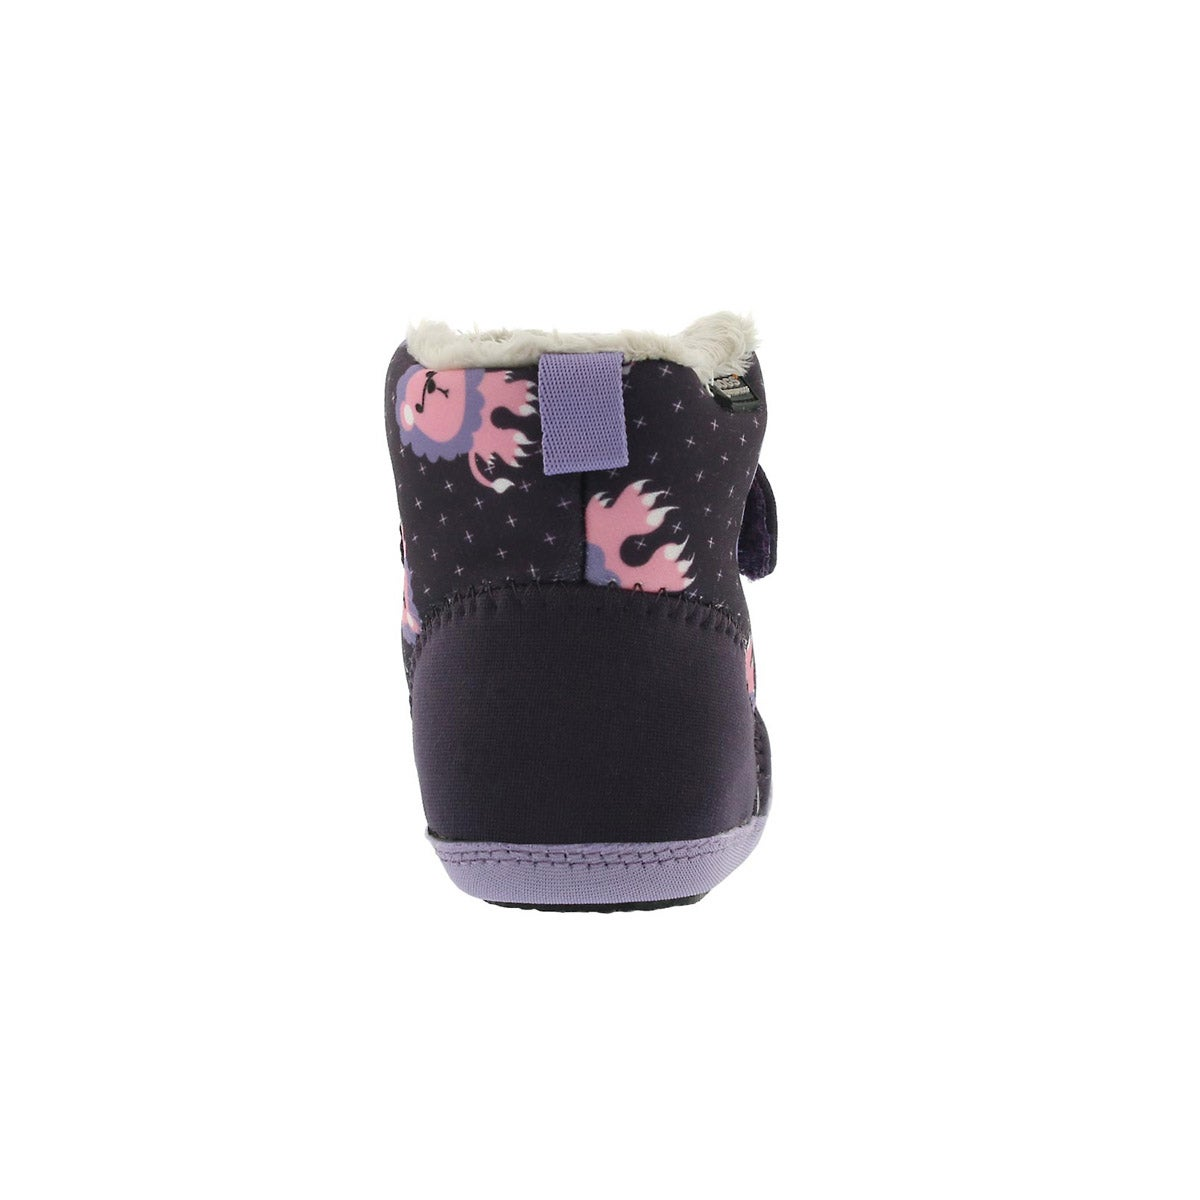 Inf-g Elliot Lion purple multi wtpf boot